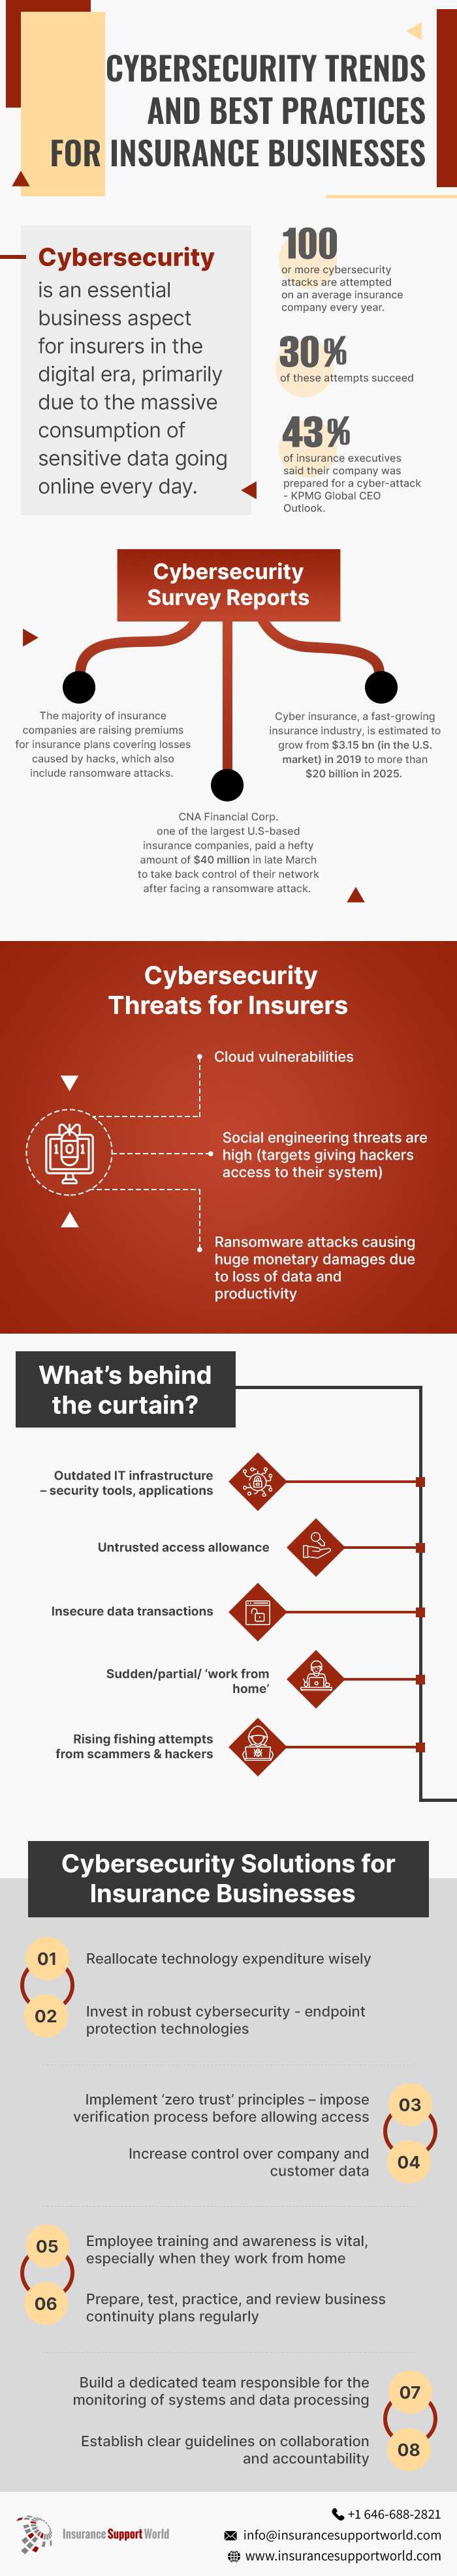 Cyber Security Trends & Practices